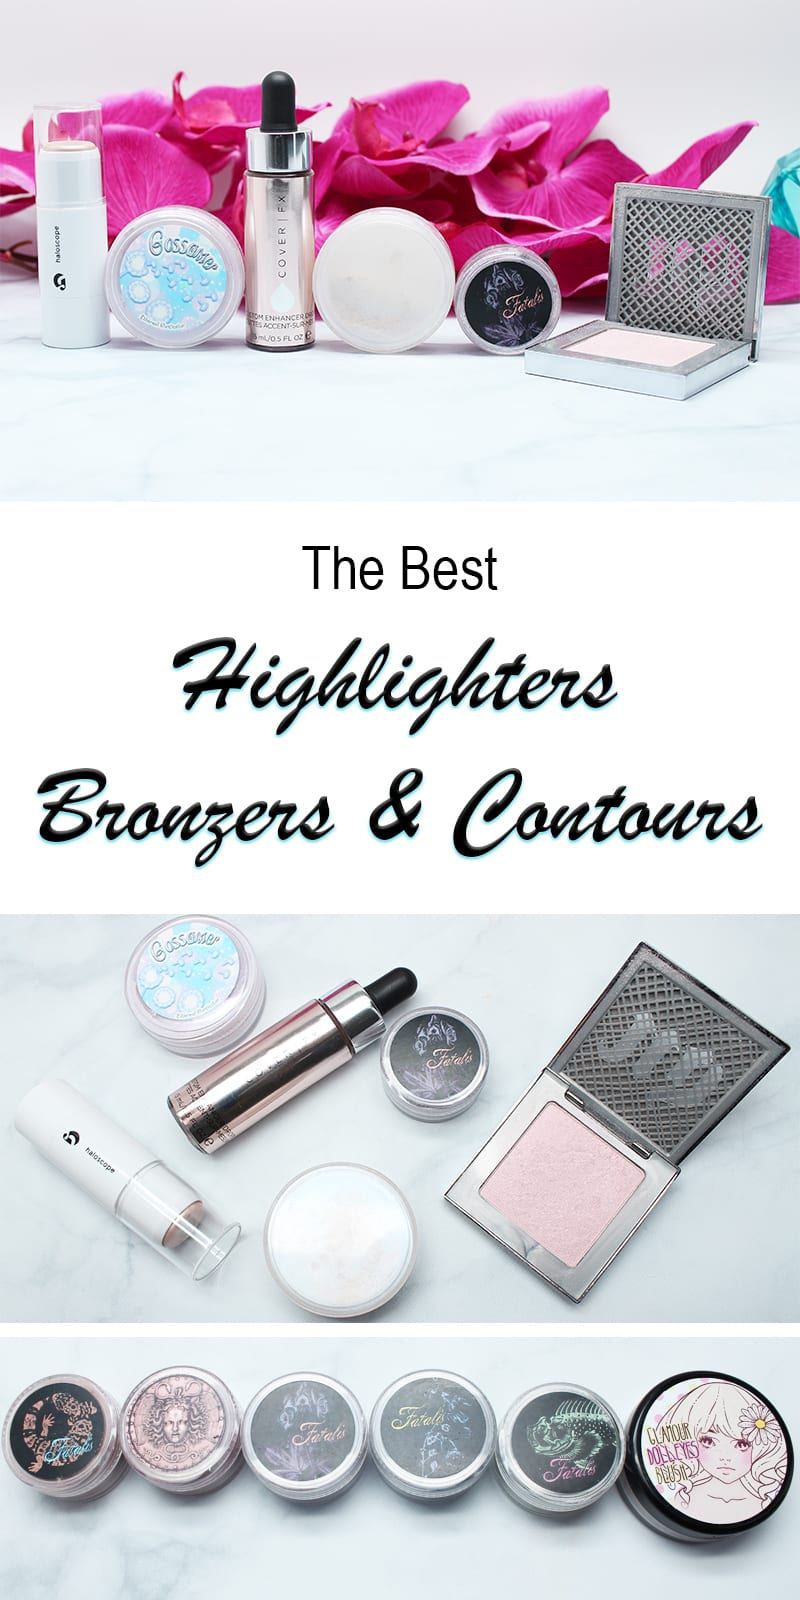 Best Highlighters, Bronzers and Contours for Summer